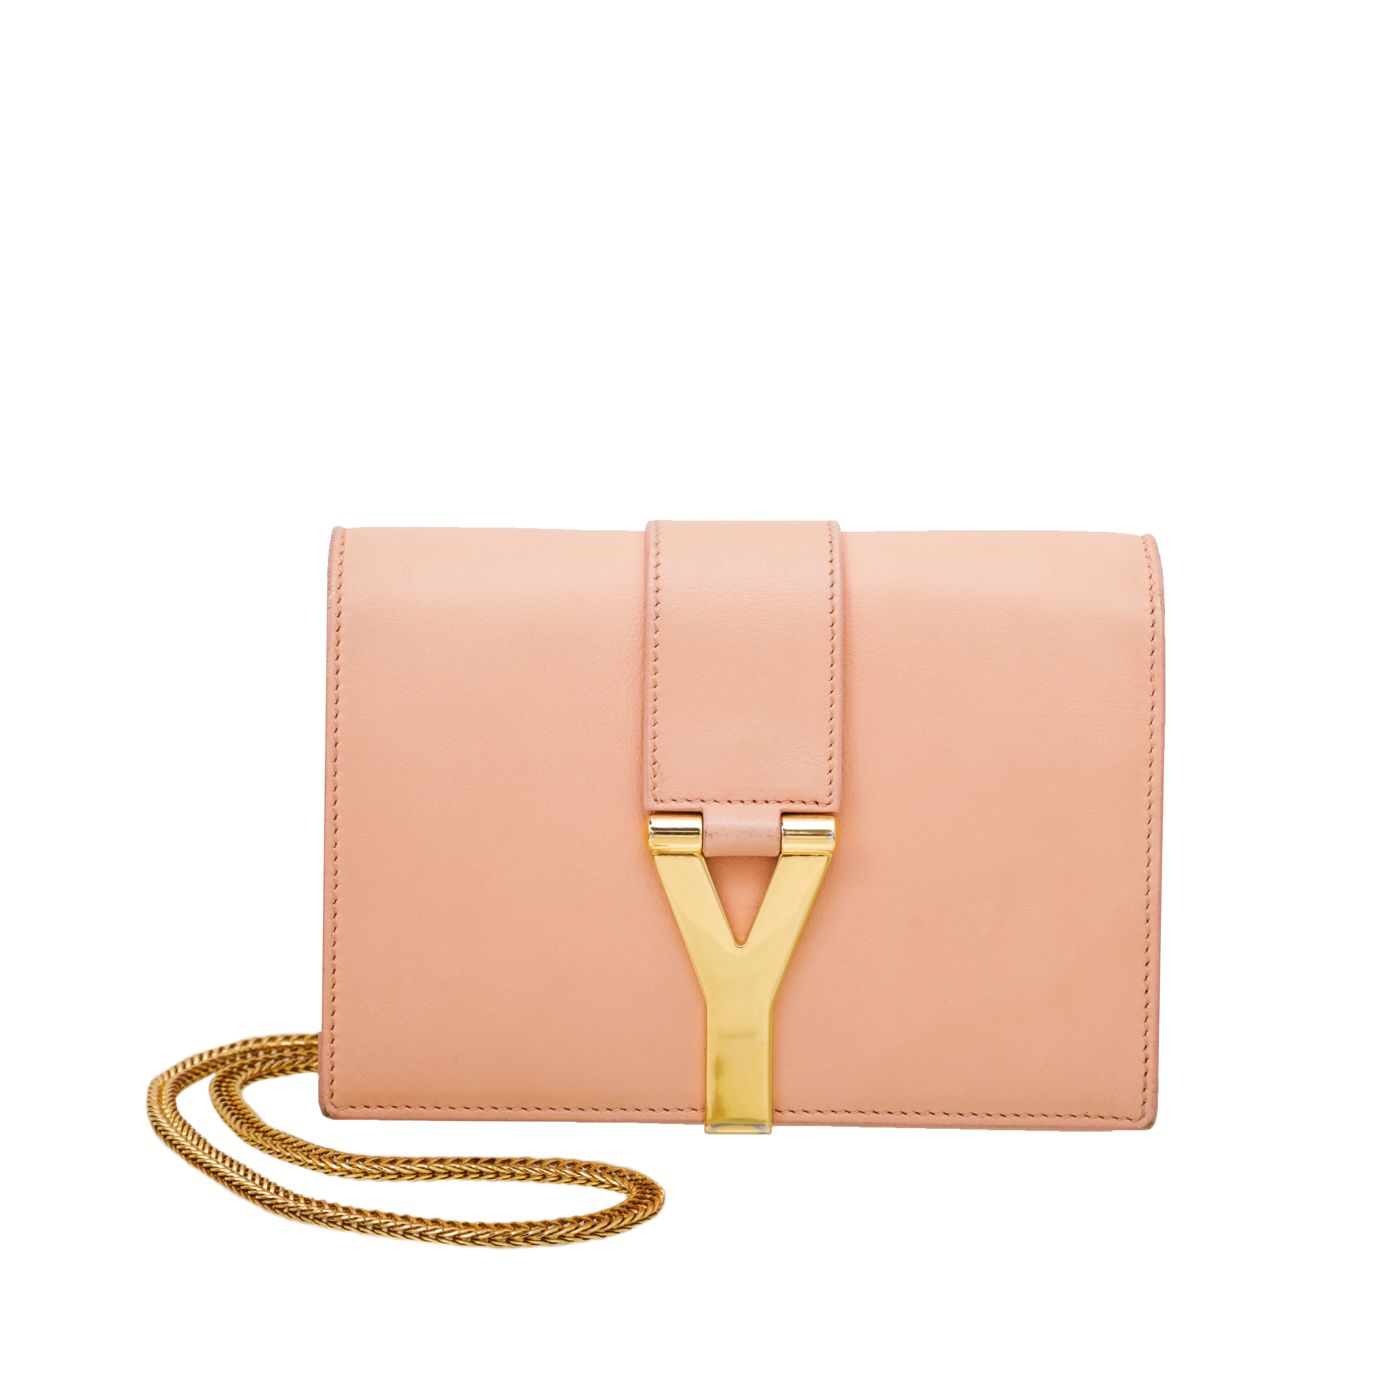 YSL Light Peach Chyc Mini Chain Bag